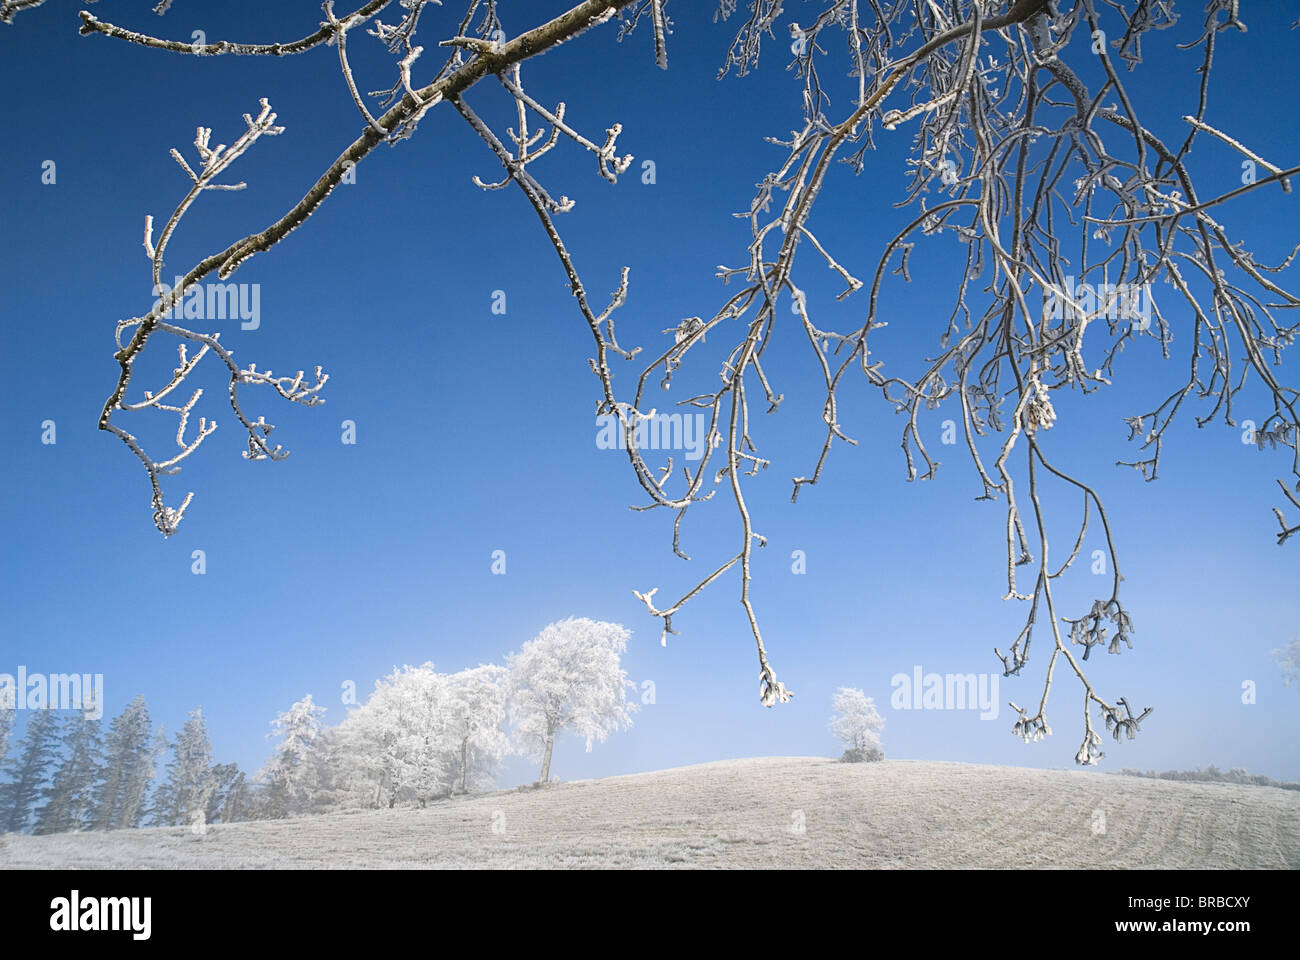 IRELAND County Monaghan Tullyard Trees covered in hoar frost on outskirts of Monaghan Town Eire - Stock Image